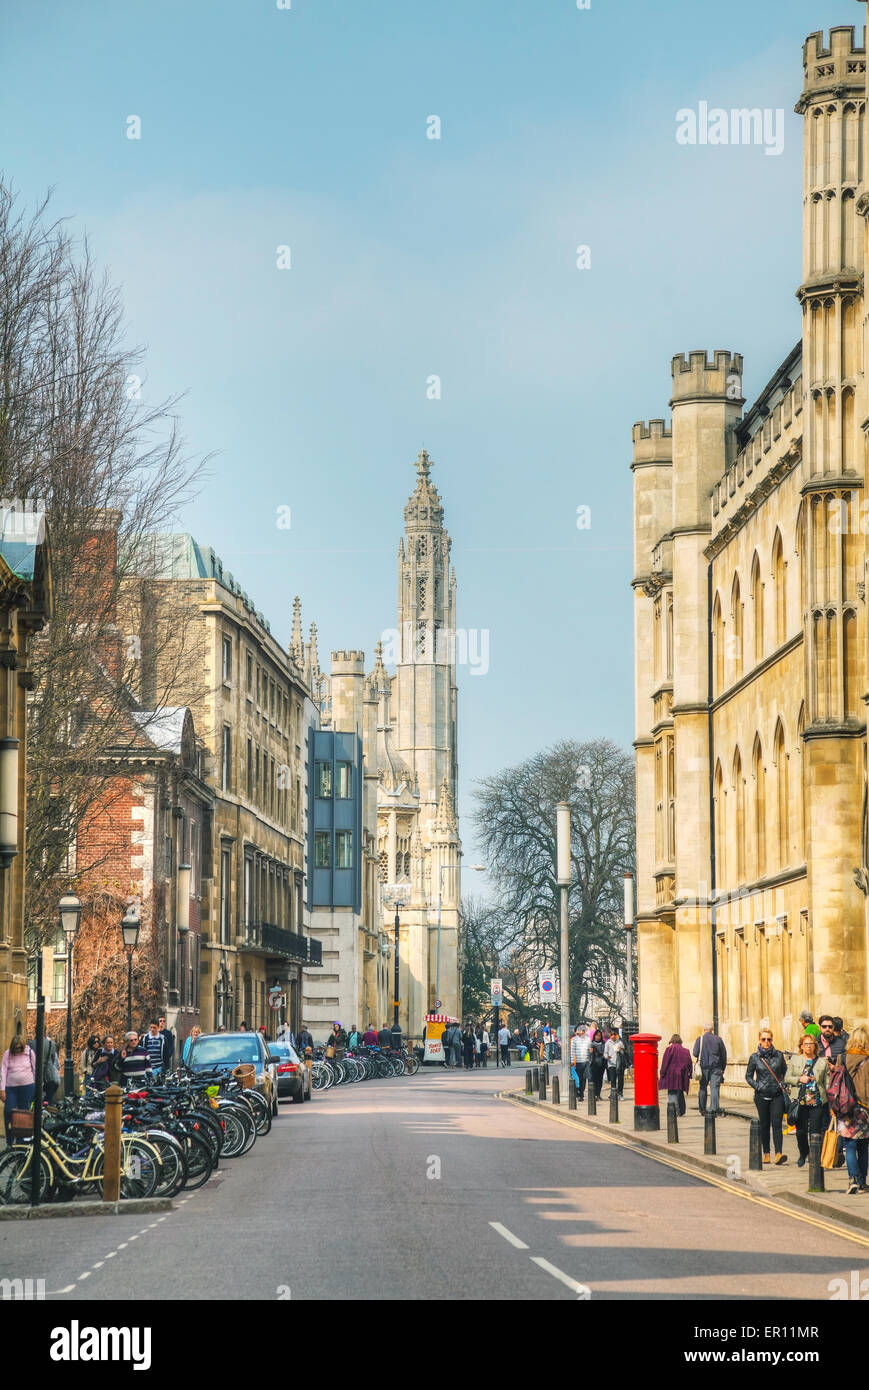 Cambridge, UK - April 9: Old King's Parade street on April 9, 2015 in Cambridge, UK. It's a university city - Stock Image